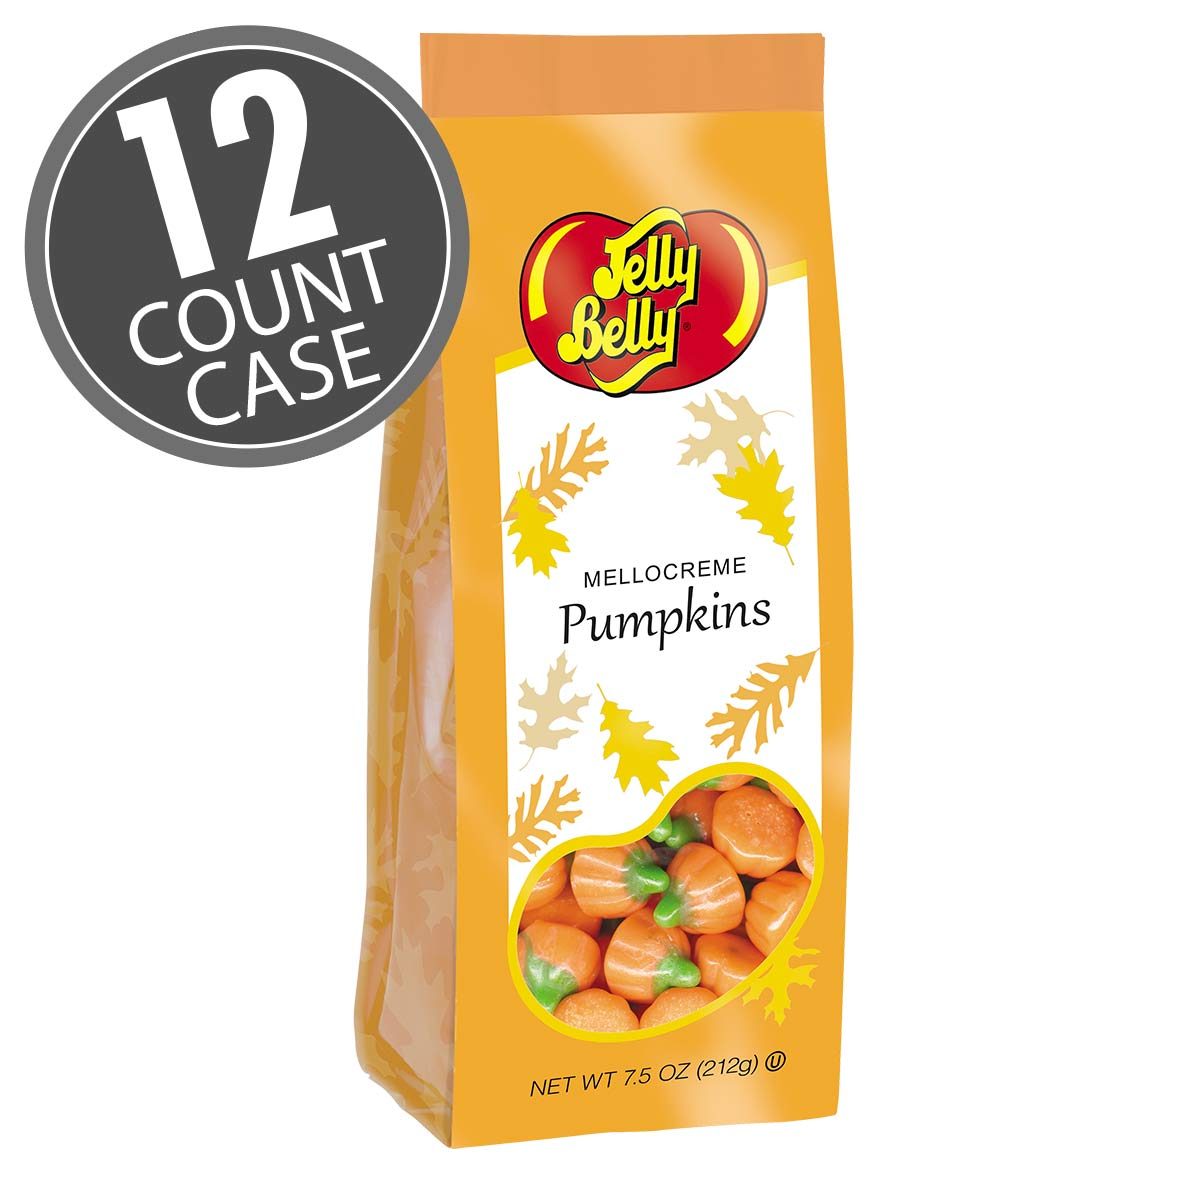 Mellocreme Pumpkins Gift Bags - 7.5 oz Bag - 12 Count Case